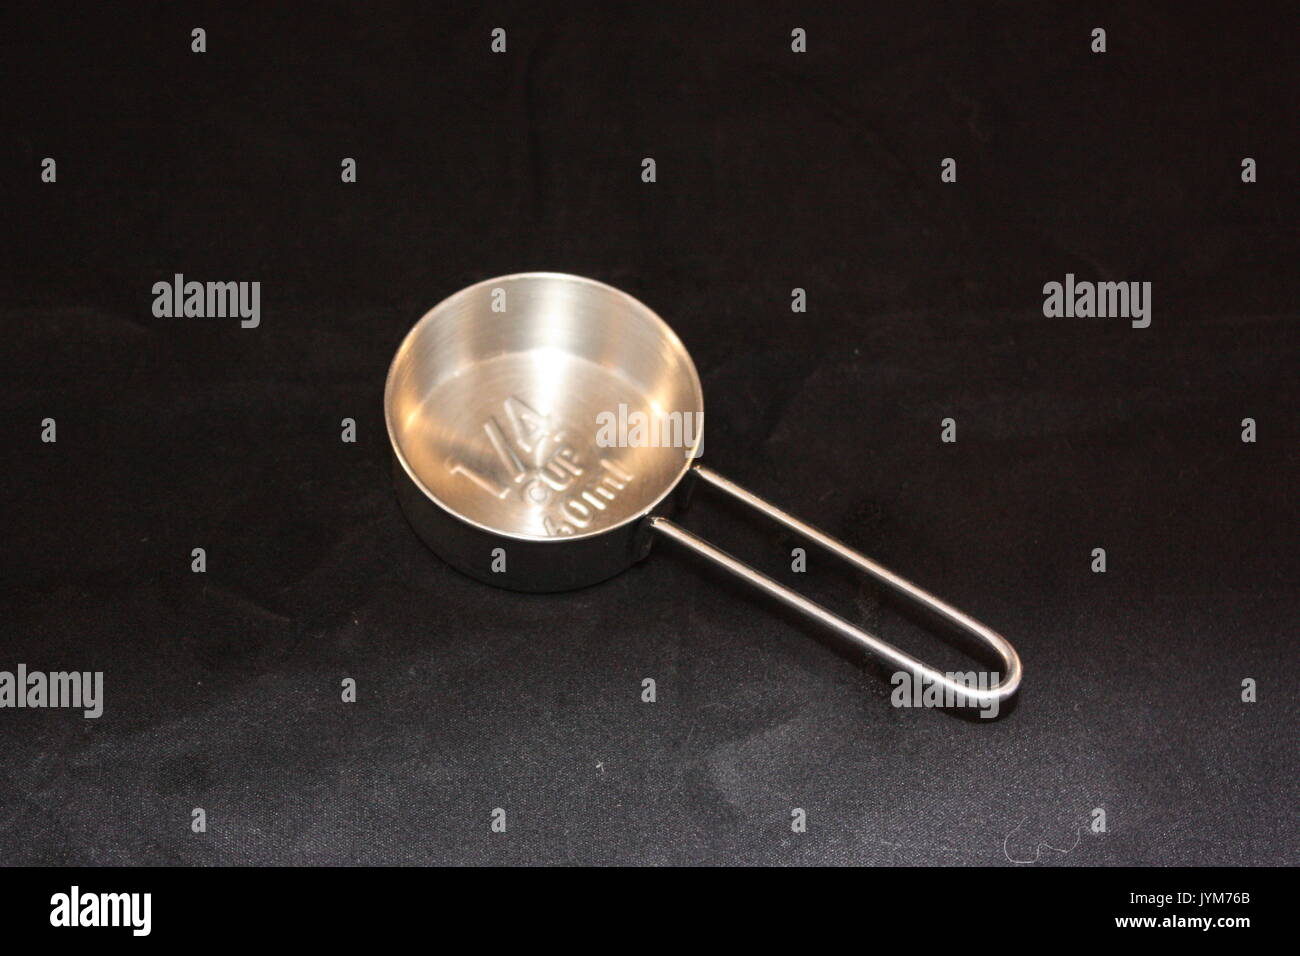 Stainless steel measuring spoon - Stock Image